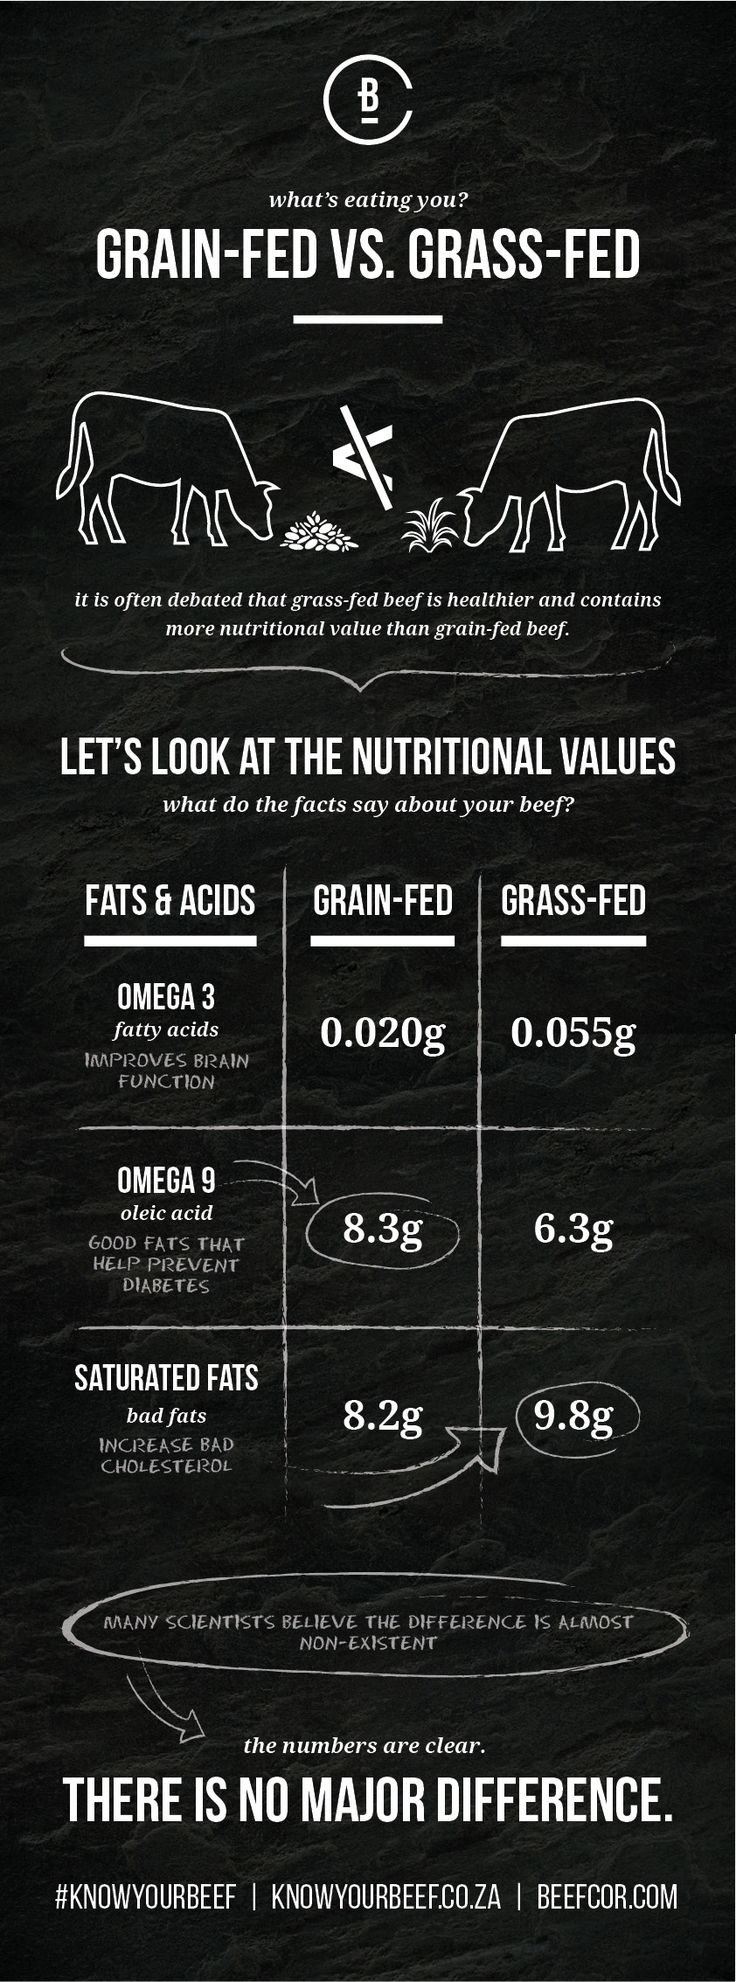 The difference in nutrients between grain- and grass-fed beef isn't that big. Learn more on knowyourbeef.com